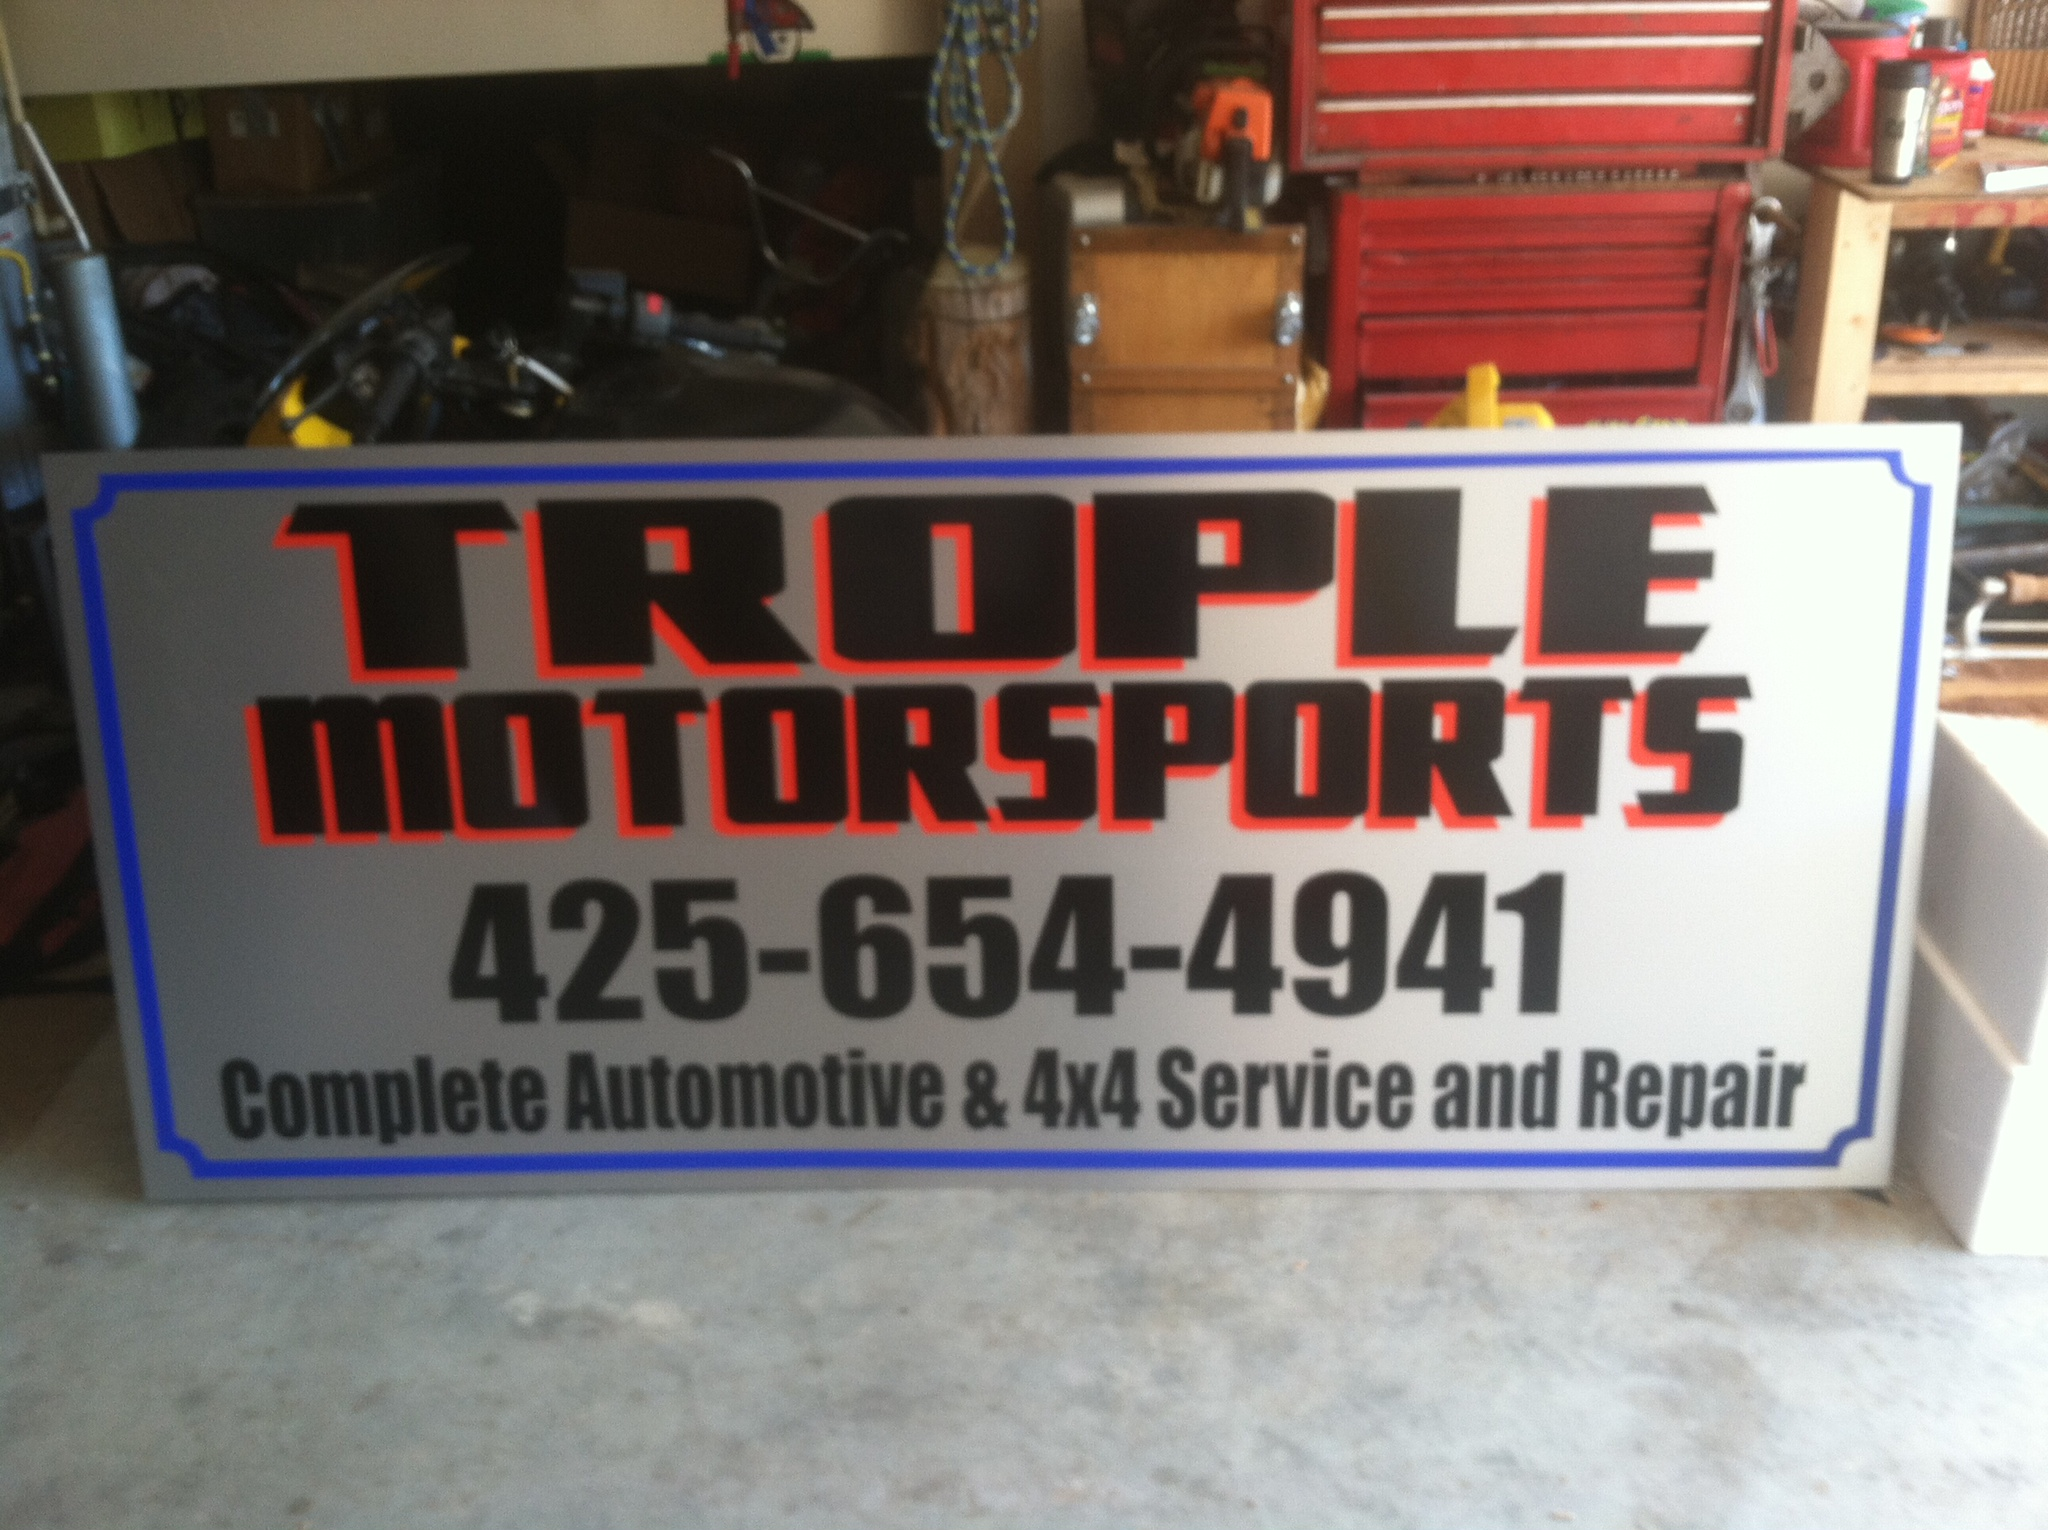 die-cut graphics on brushed metal alupanel for Trople Motorsports of Everett, wa